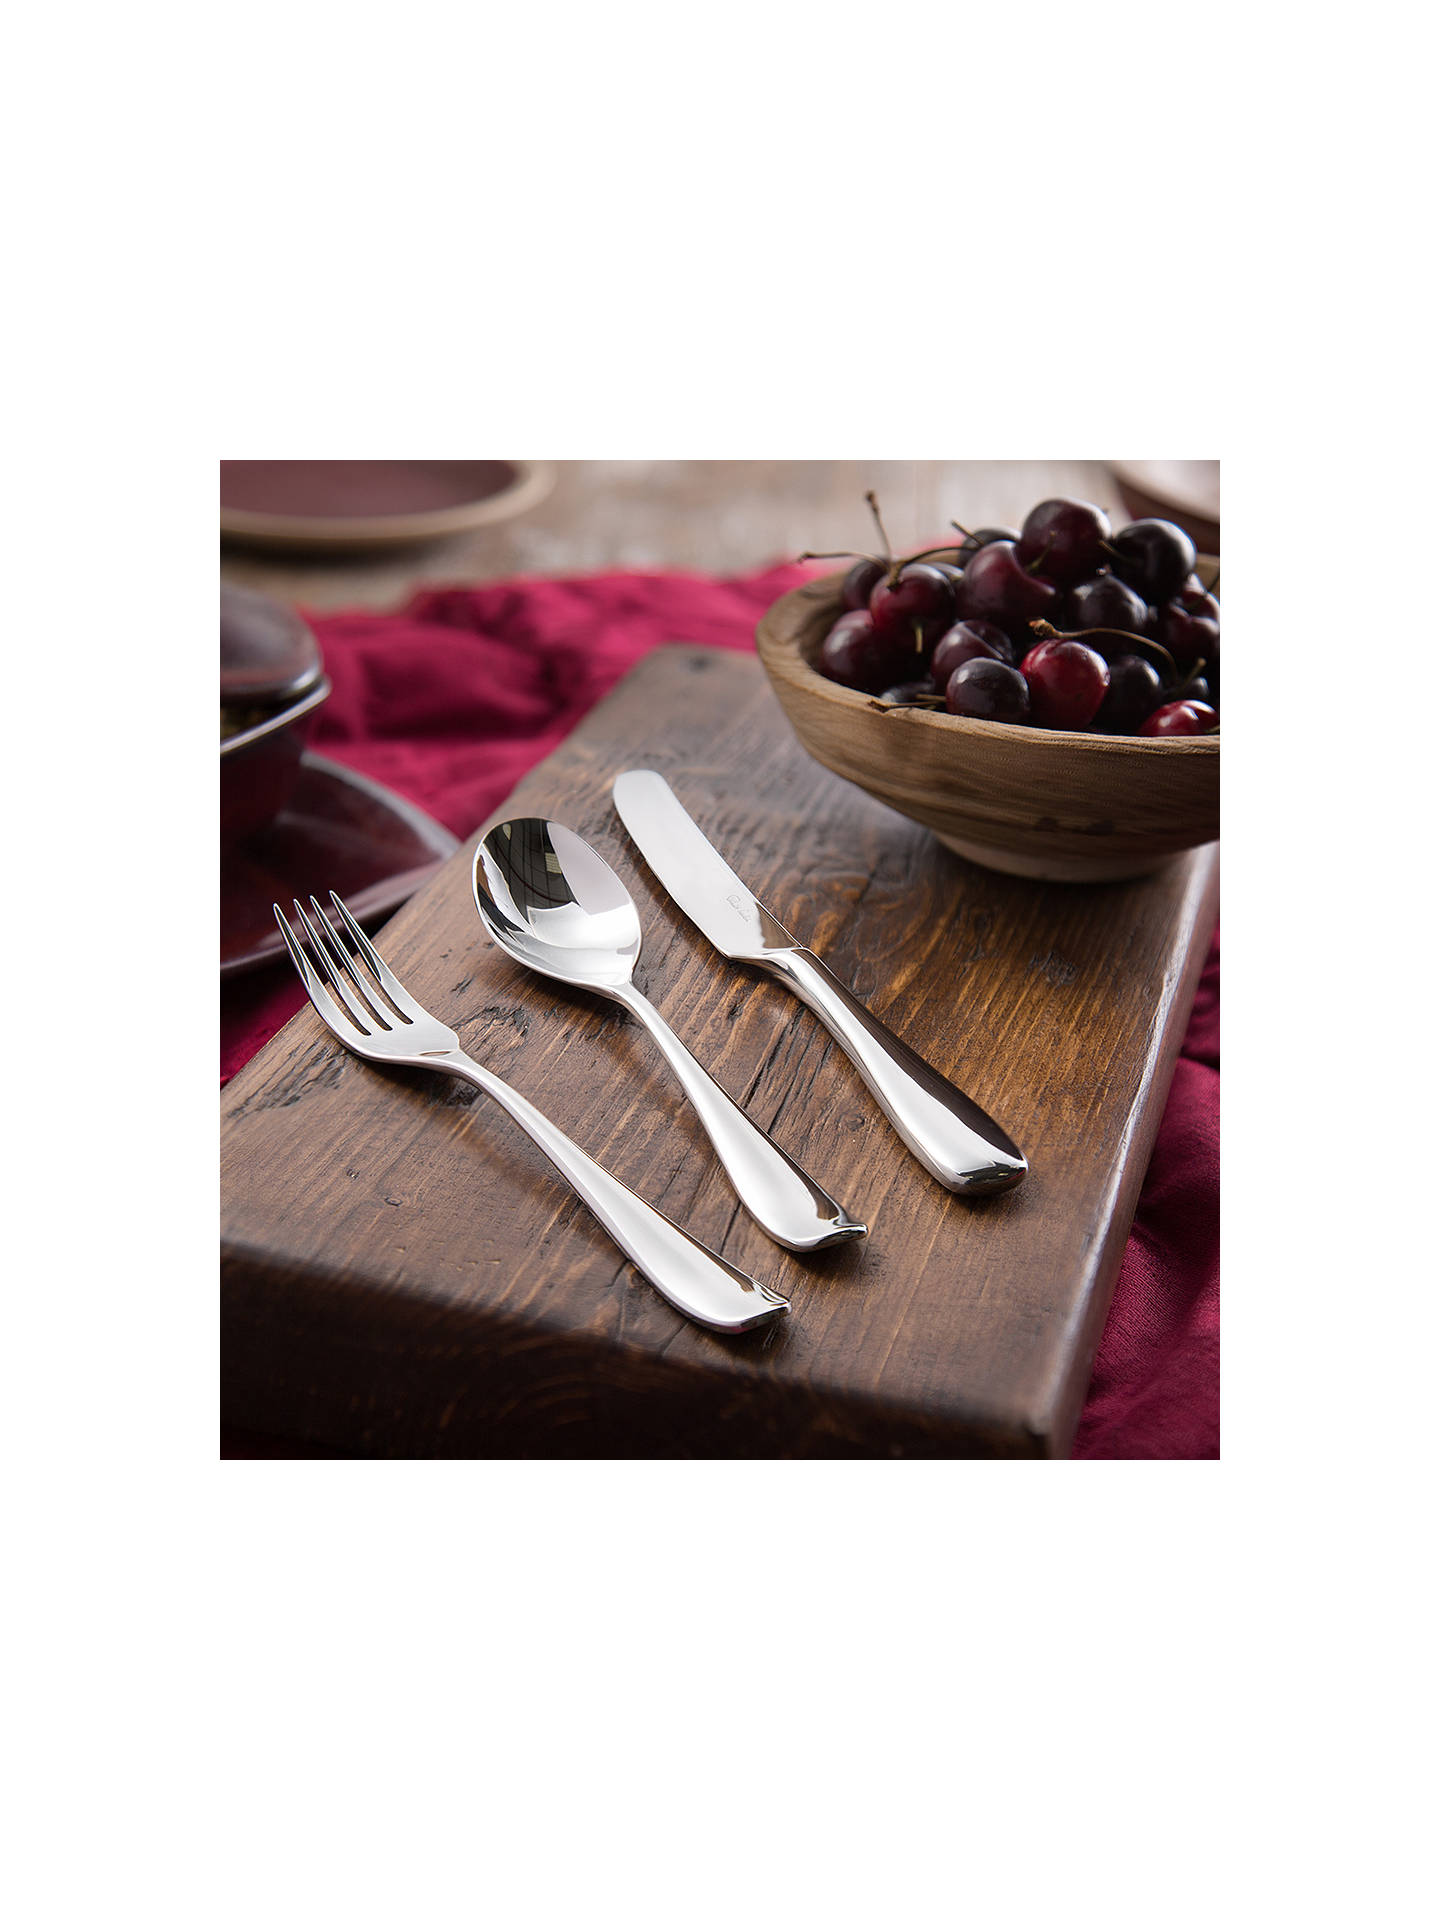 Buy Robert Welch Warwick Cutlery Set, 44 Piece/6 Place Settings Online at johnlewis.com